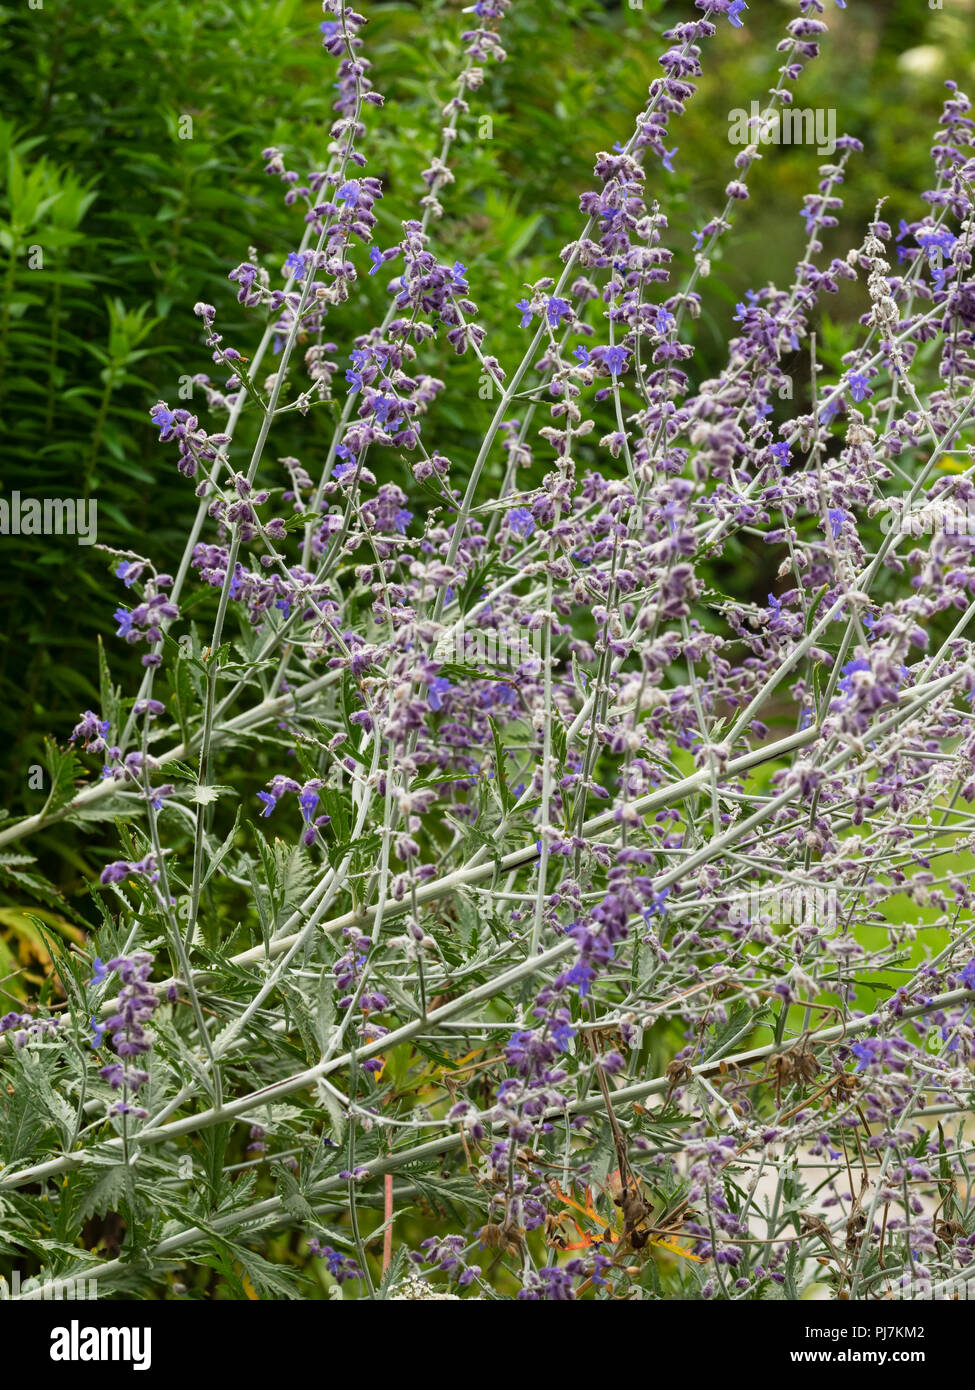 Airy, tangled stems bearing late summer blue flowers of the Russian sage, Perovskia atriplicifolia 'Blue Spire' - Stock Image